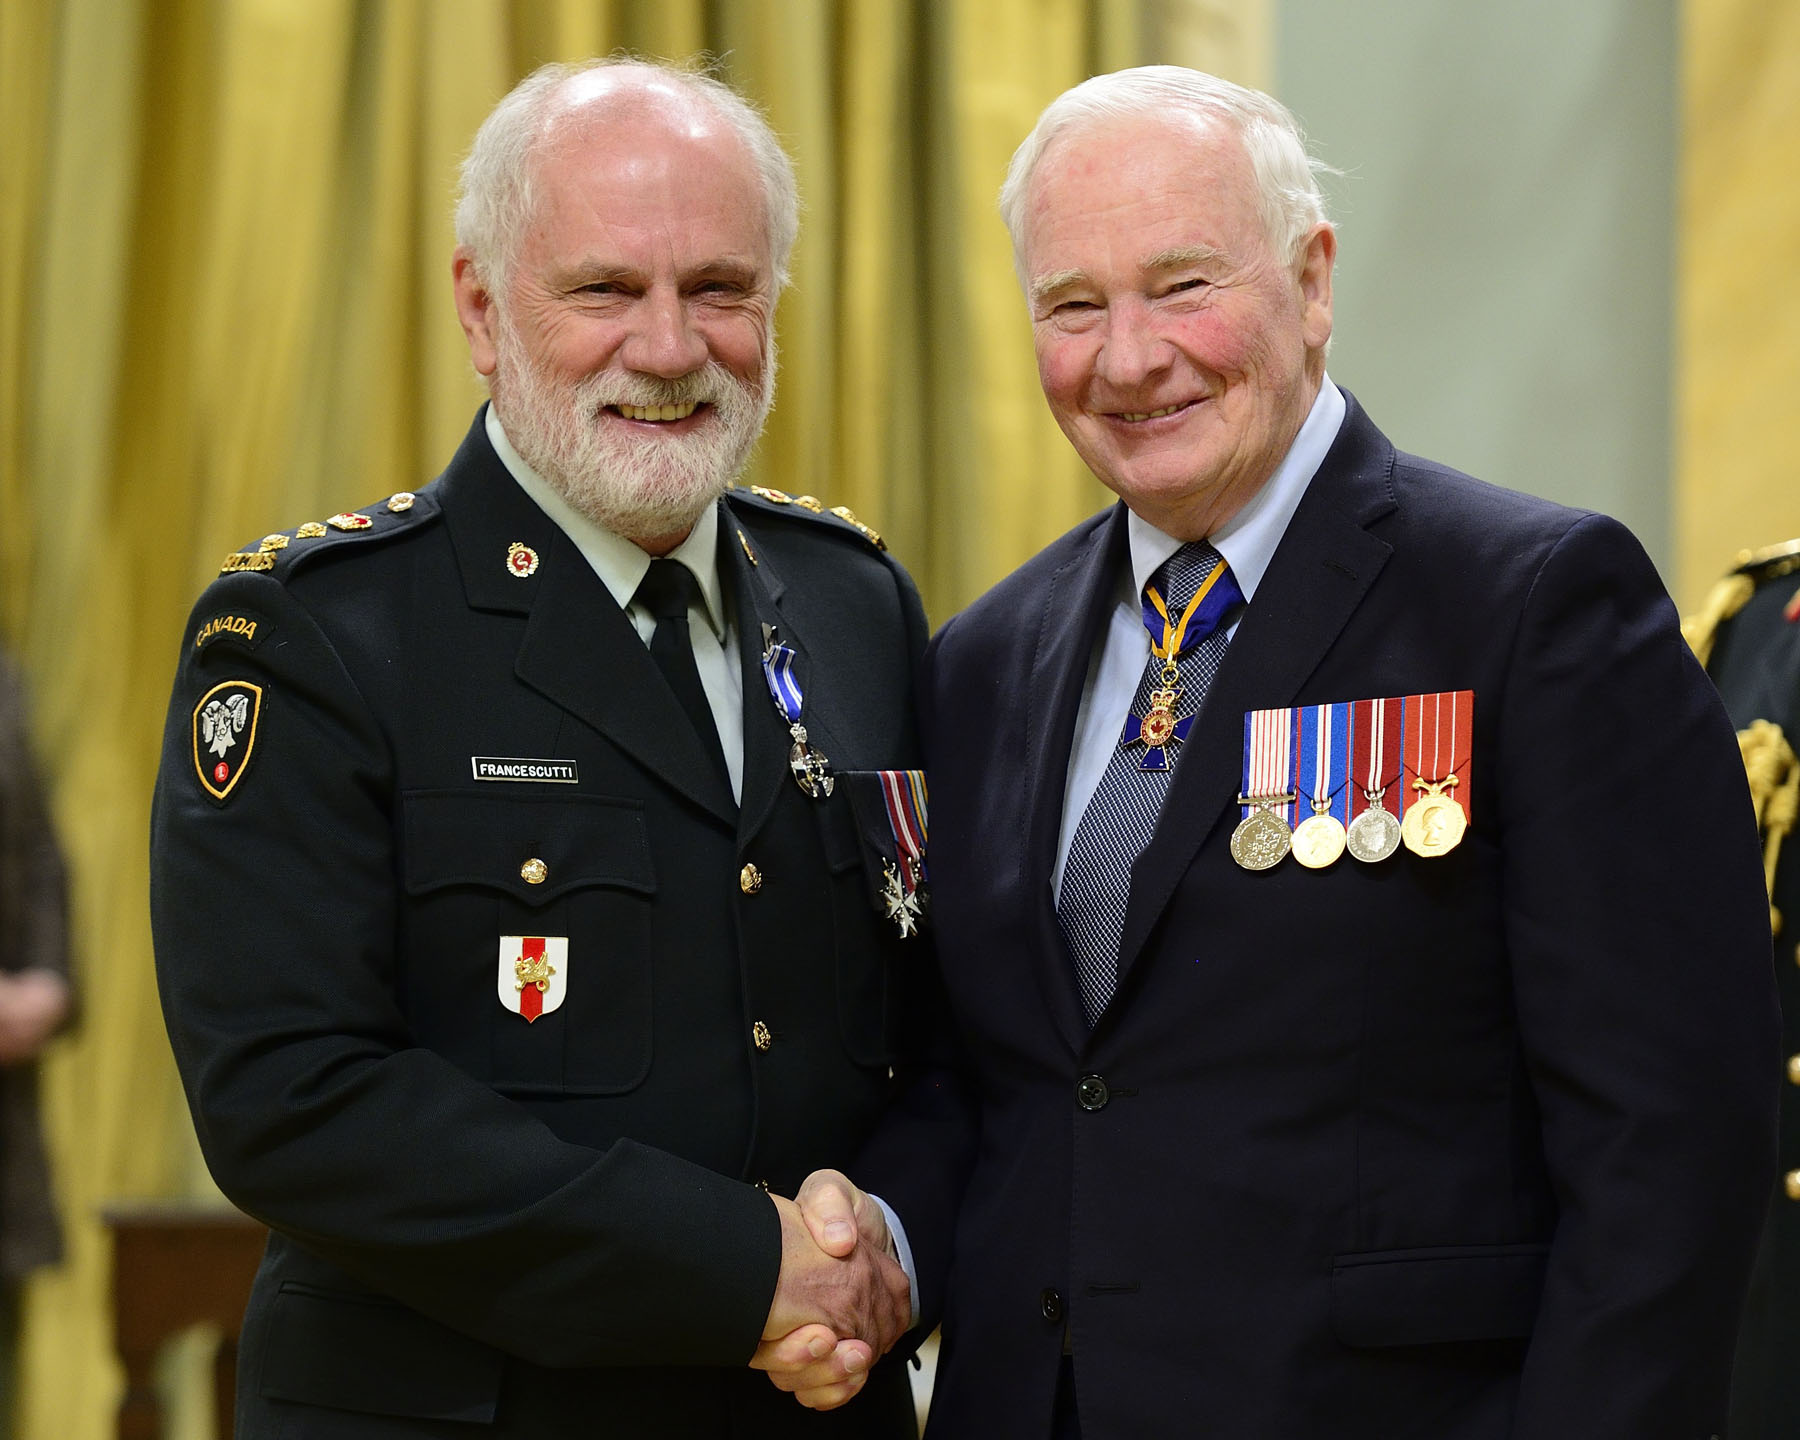 Appointed honorary colonel of 1 Field Ambulance in 2011, Dr. Louis Hugo Francescutti, M.S.M. has greatly supported his unit and the Canadian Armed Forces. During two influential appointments as president of the Royal College of Physicians and Surgeons of Canada (2011-2013) and president of the Canadian Medical Association (2013-2014), he promoted the Forces and solicited military input into national initiatives. Honorary Colonel Francescutti has significantly heightened the medical community's support of the CAF and their representation in activities under his purview.